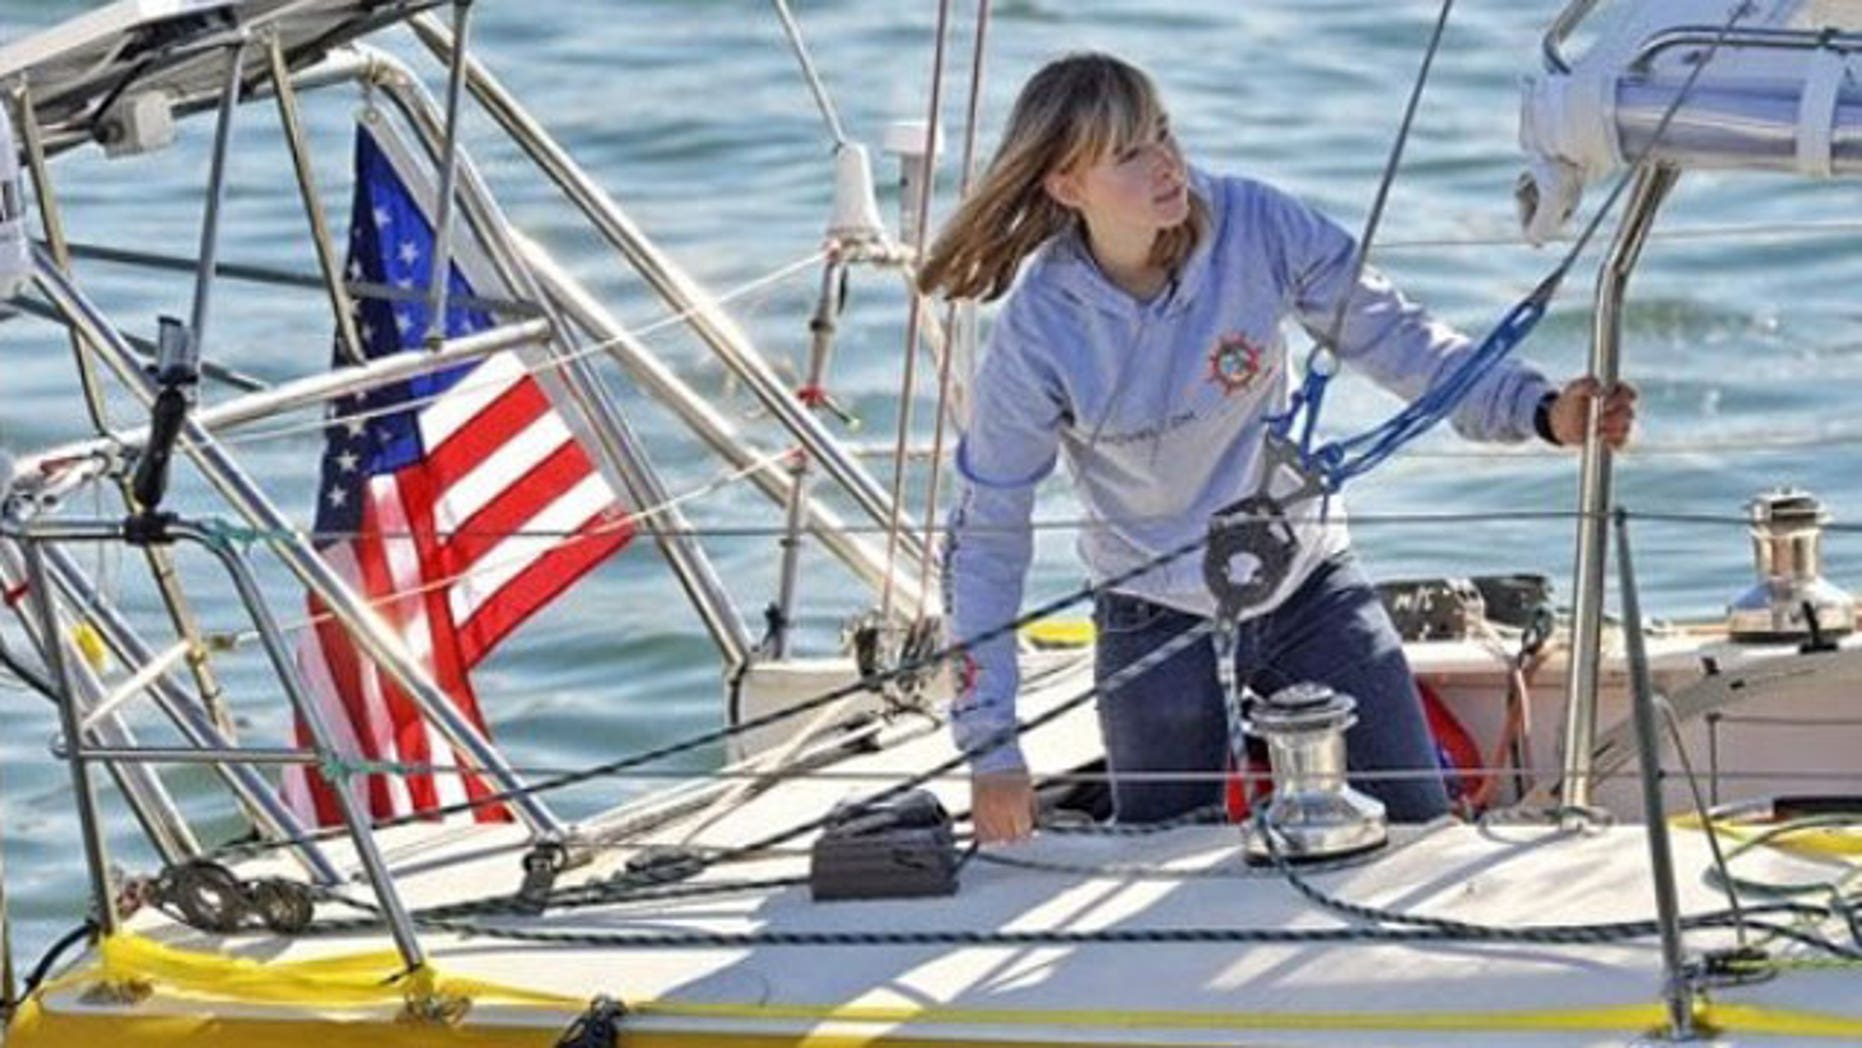 Abby Sunderland, 16, looks out from her sailboat, Wild Eyes, as she leaves for her world record attempting journey at the Del Rey Yacht Club in Marina del Rey, Calif.  (AP)